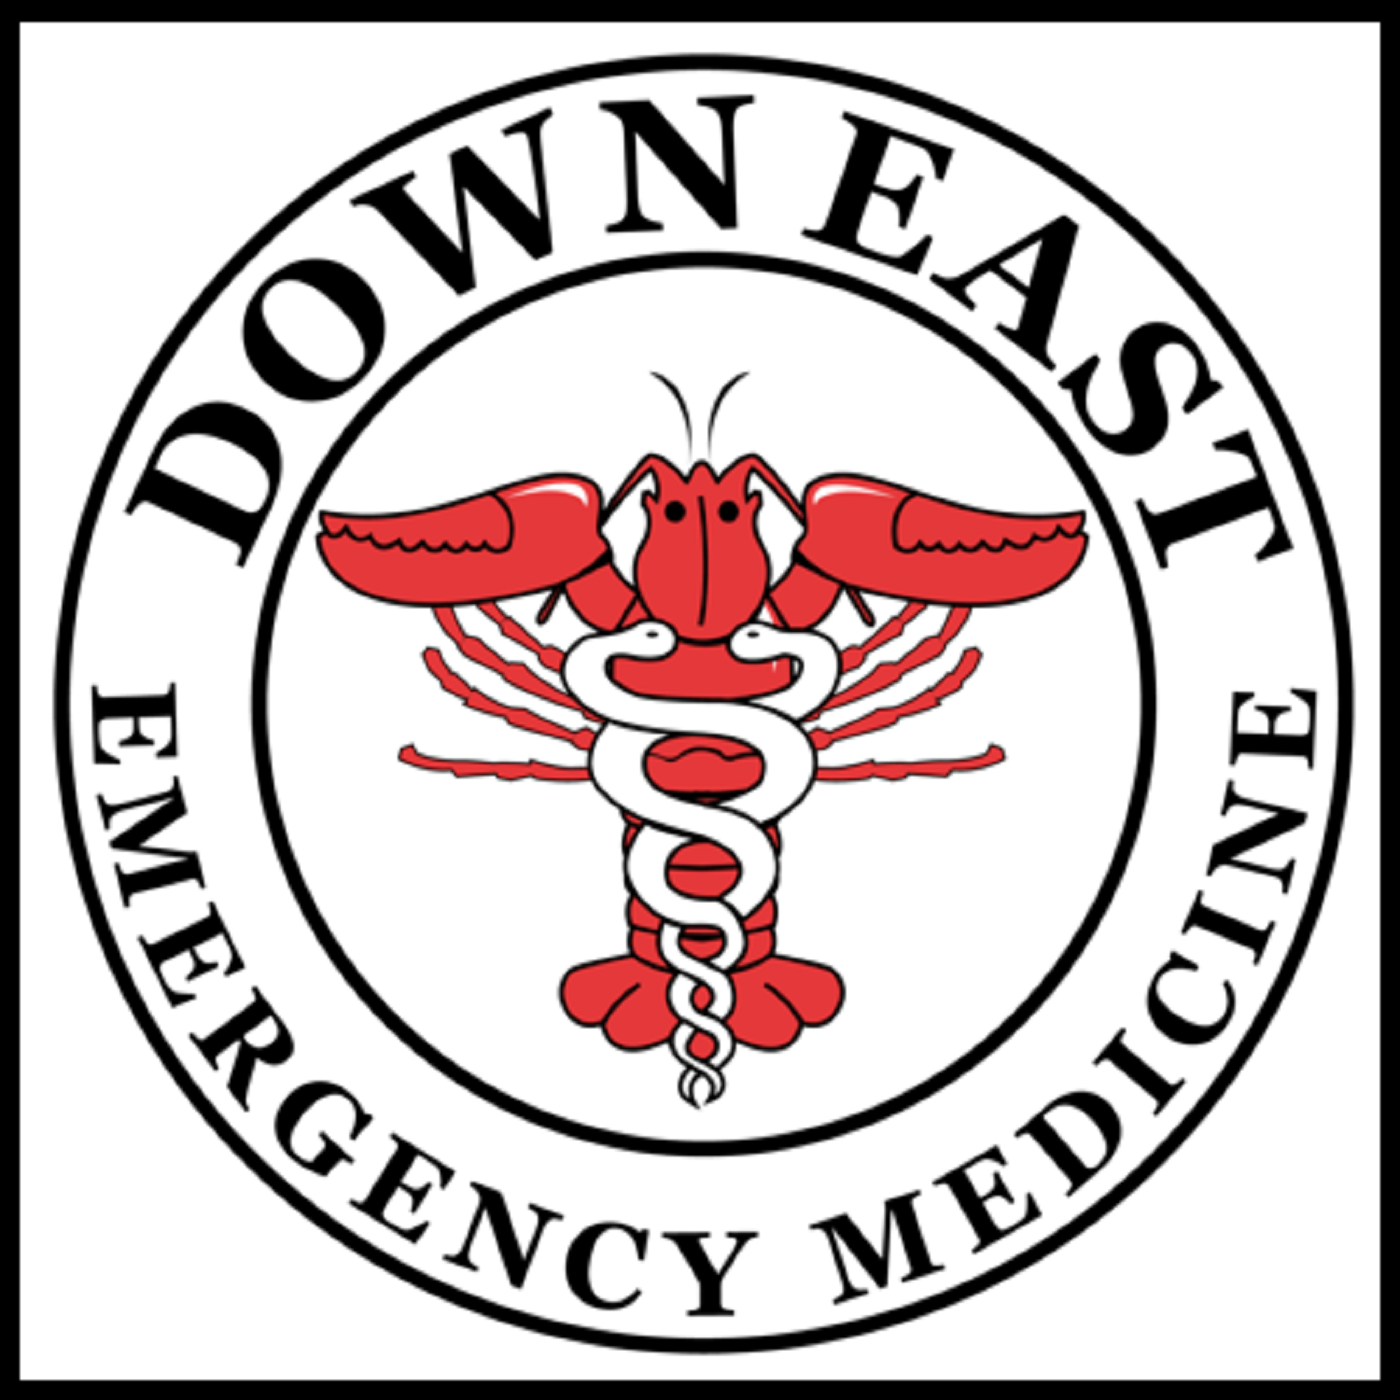 Welcome to the Down East EM podcast!